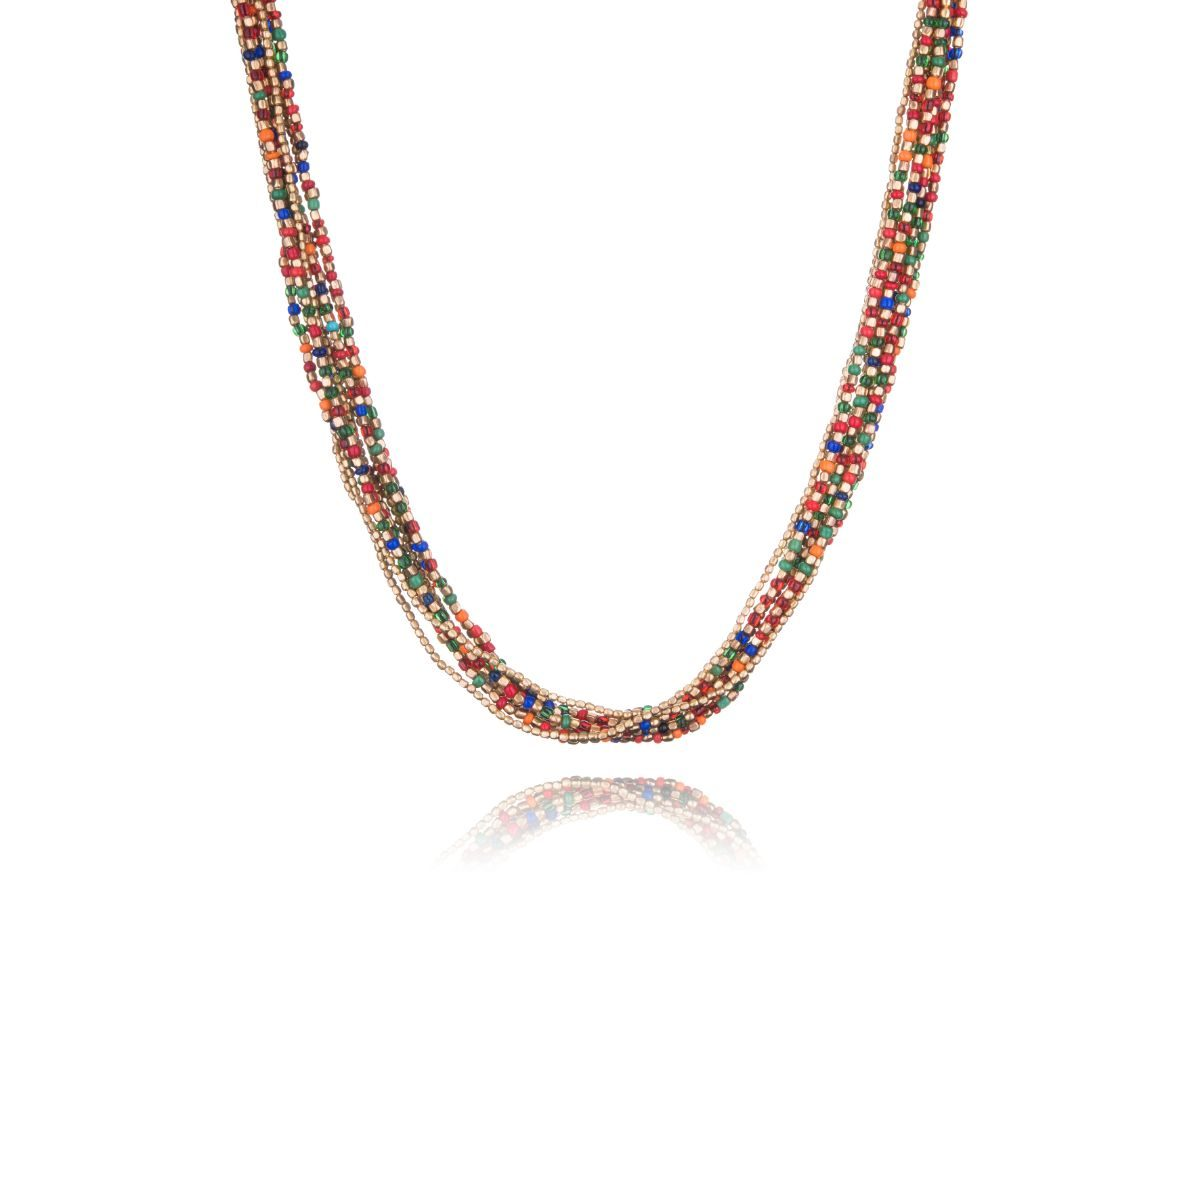 Ravenna short necklace with multitude of straps with multicolored and gold beads